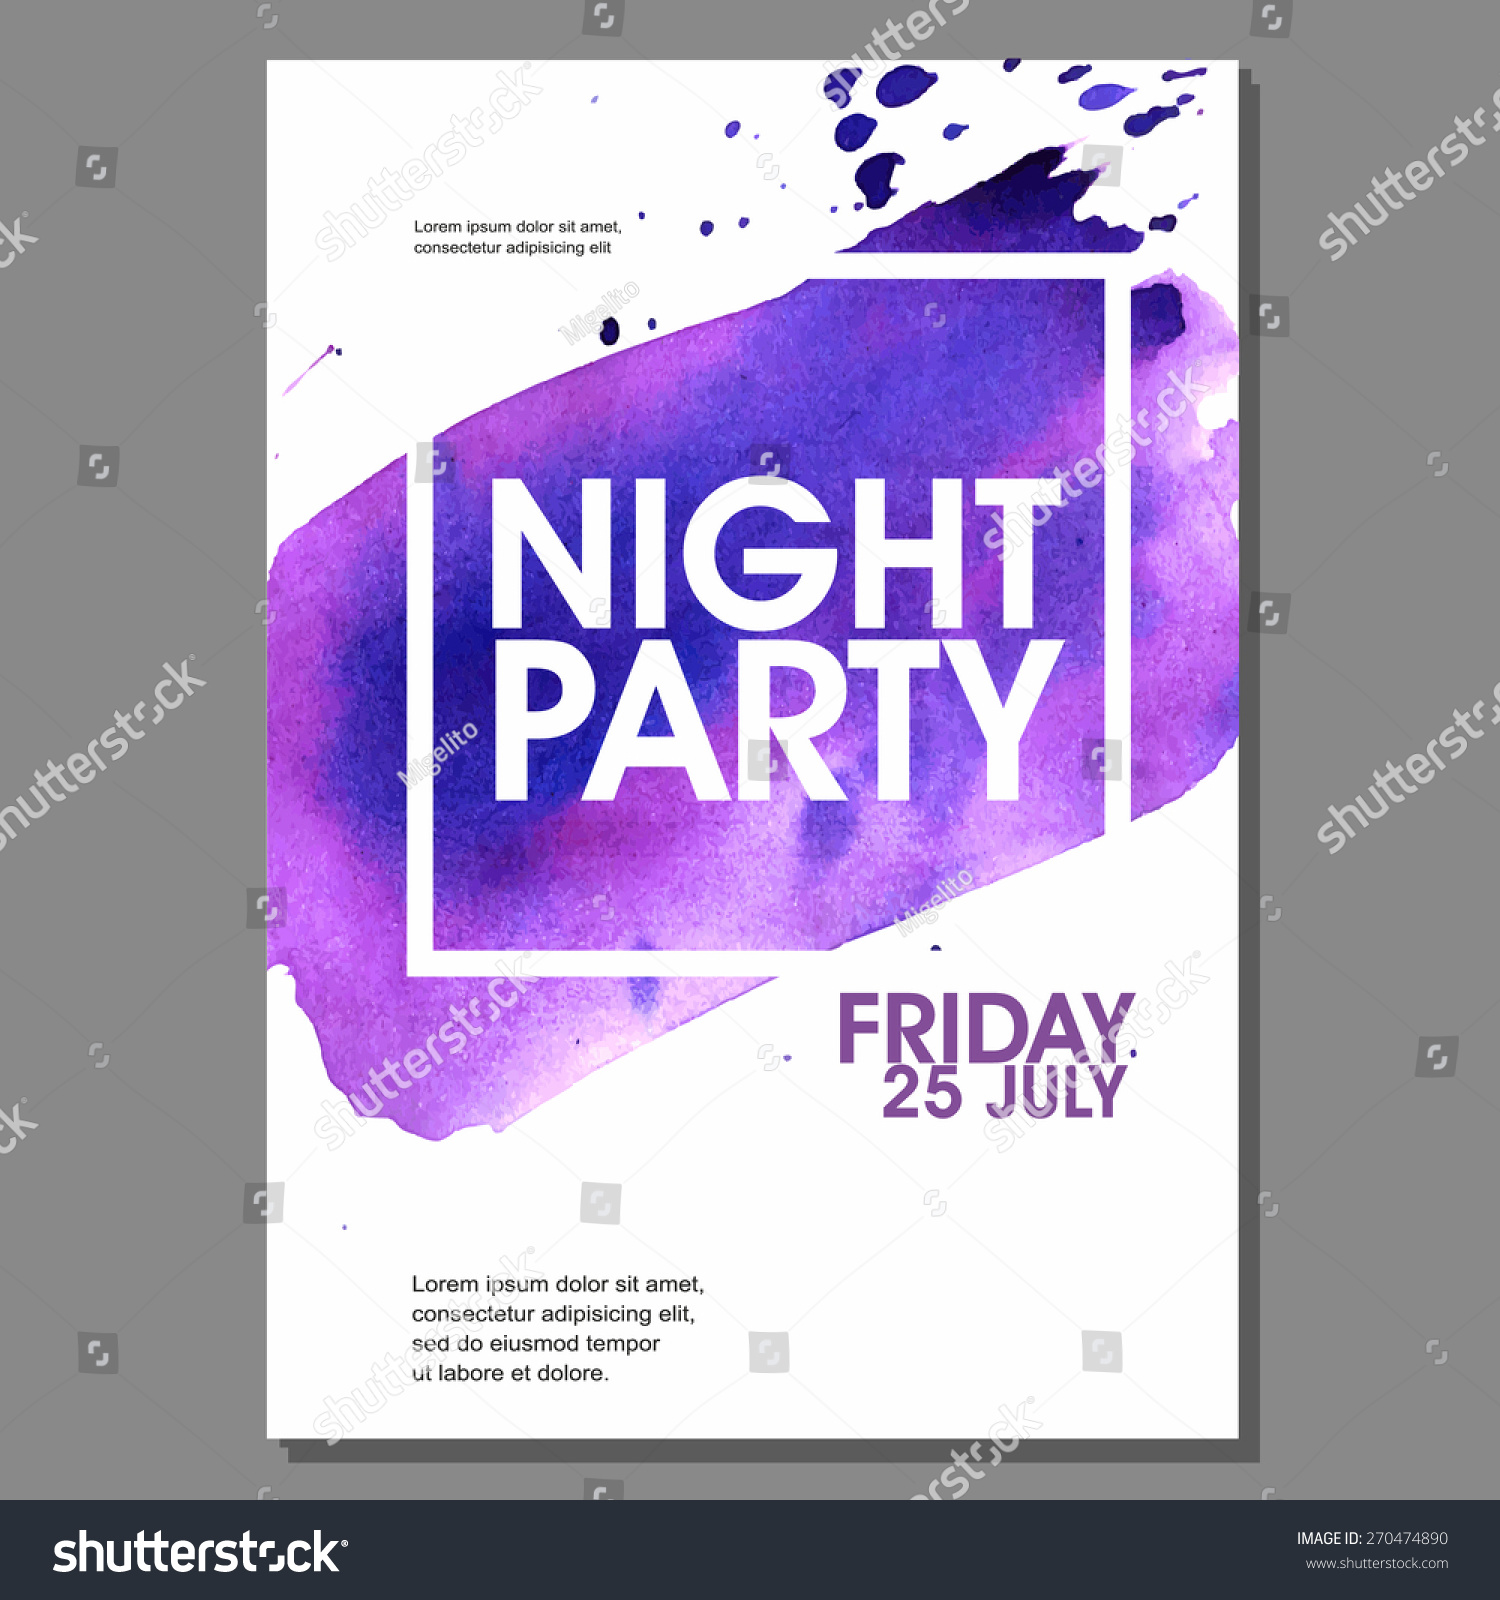 Night Party Vector Flyer Template